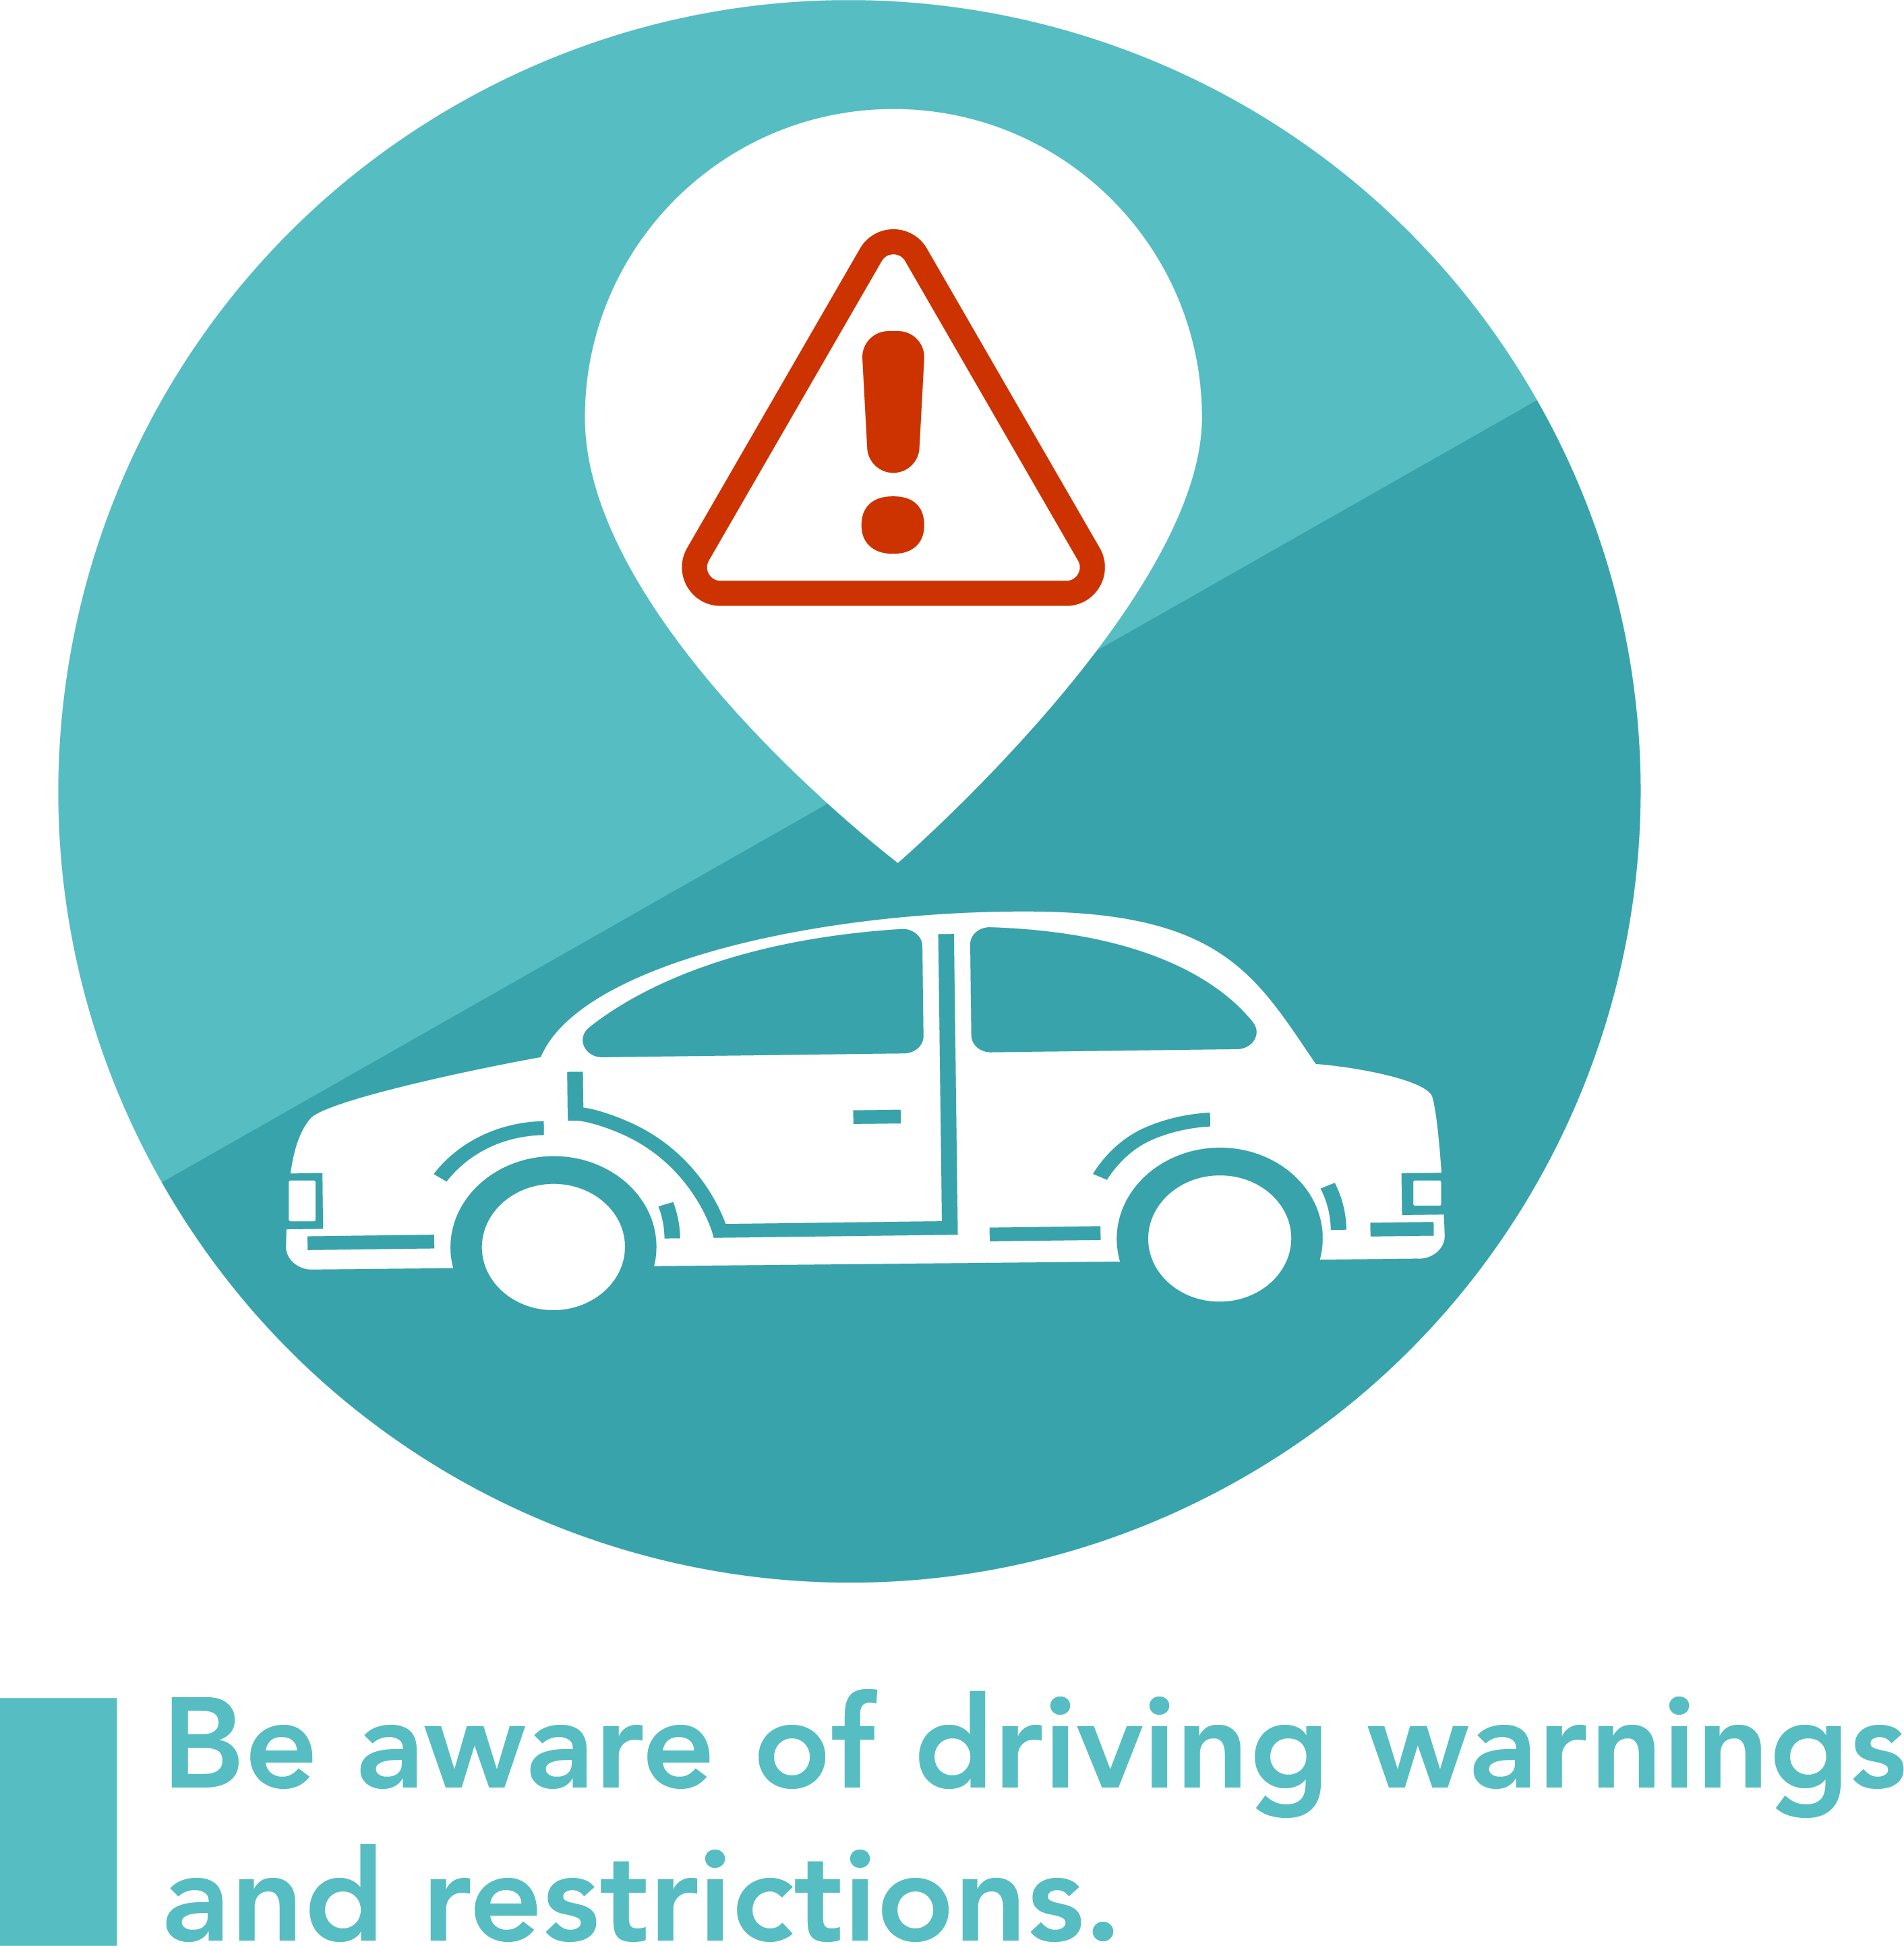 A graphic symbolizng driving warnings and restrictions